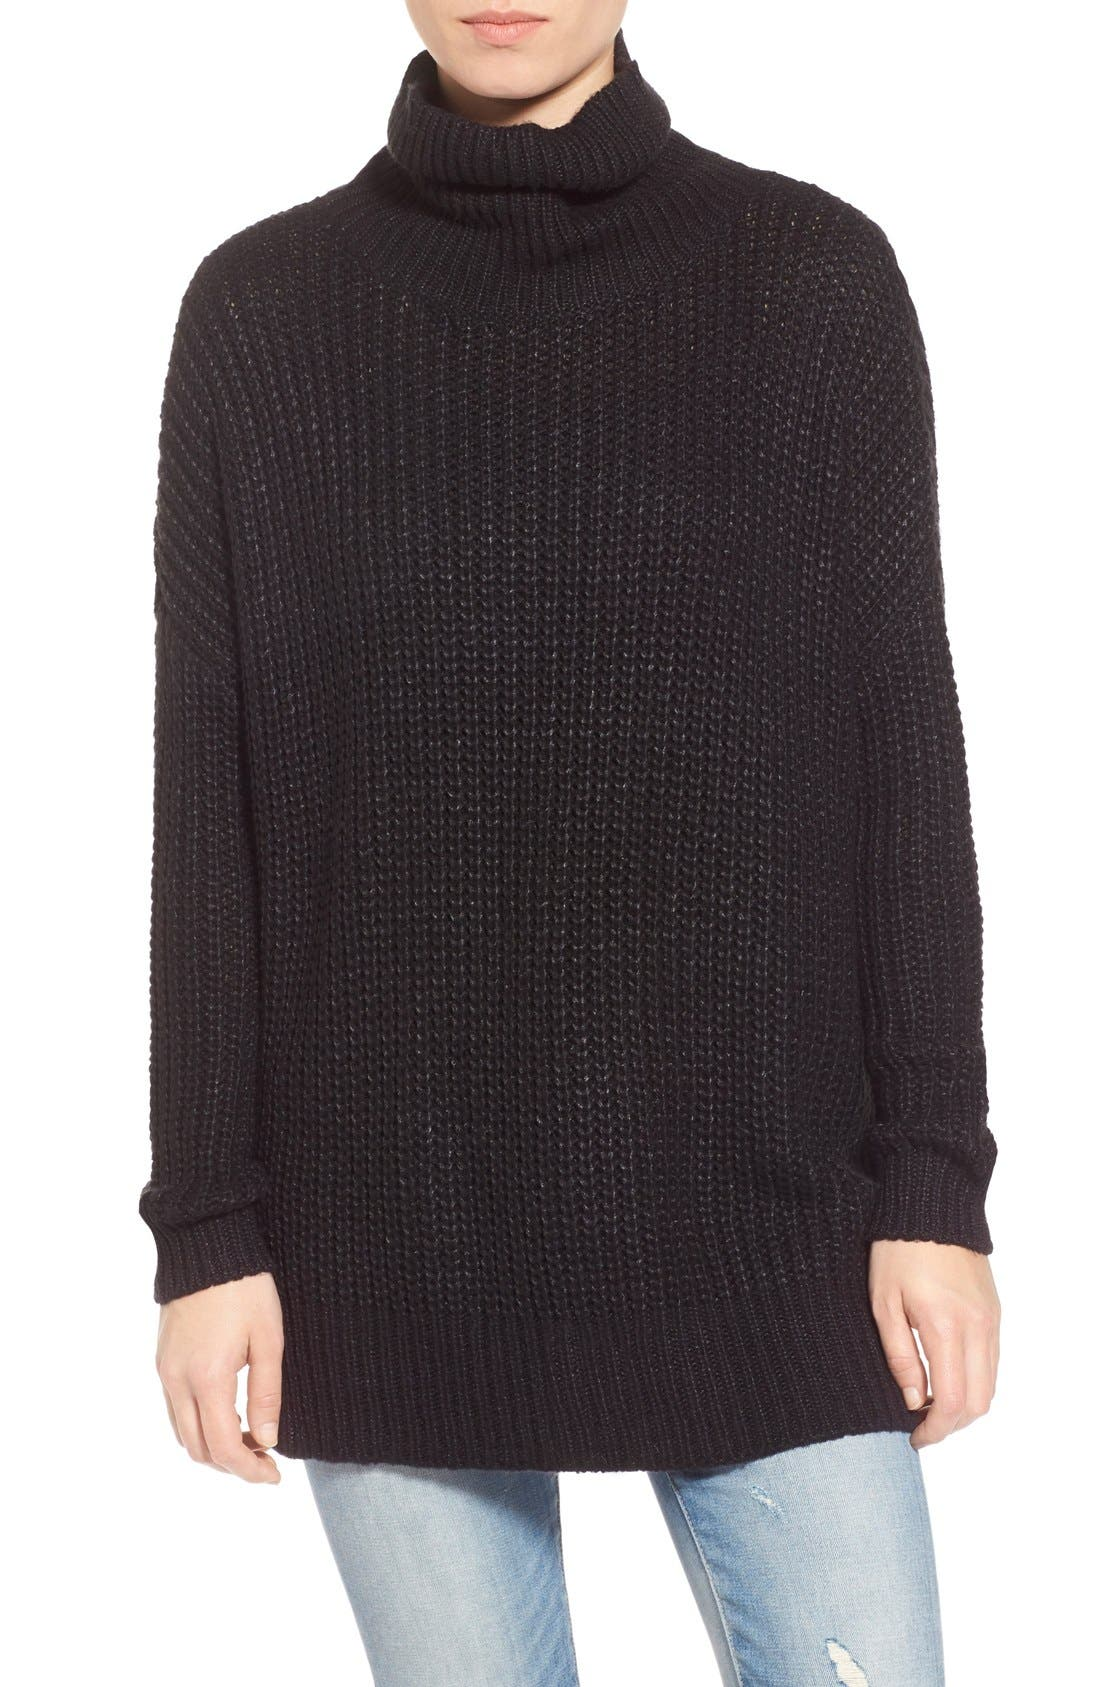 LEITH, Oversize Turtleneck Sweater, Main thumbnail 1, color, 001